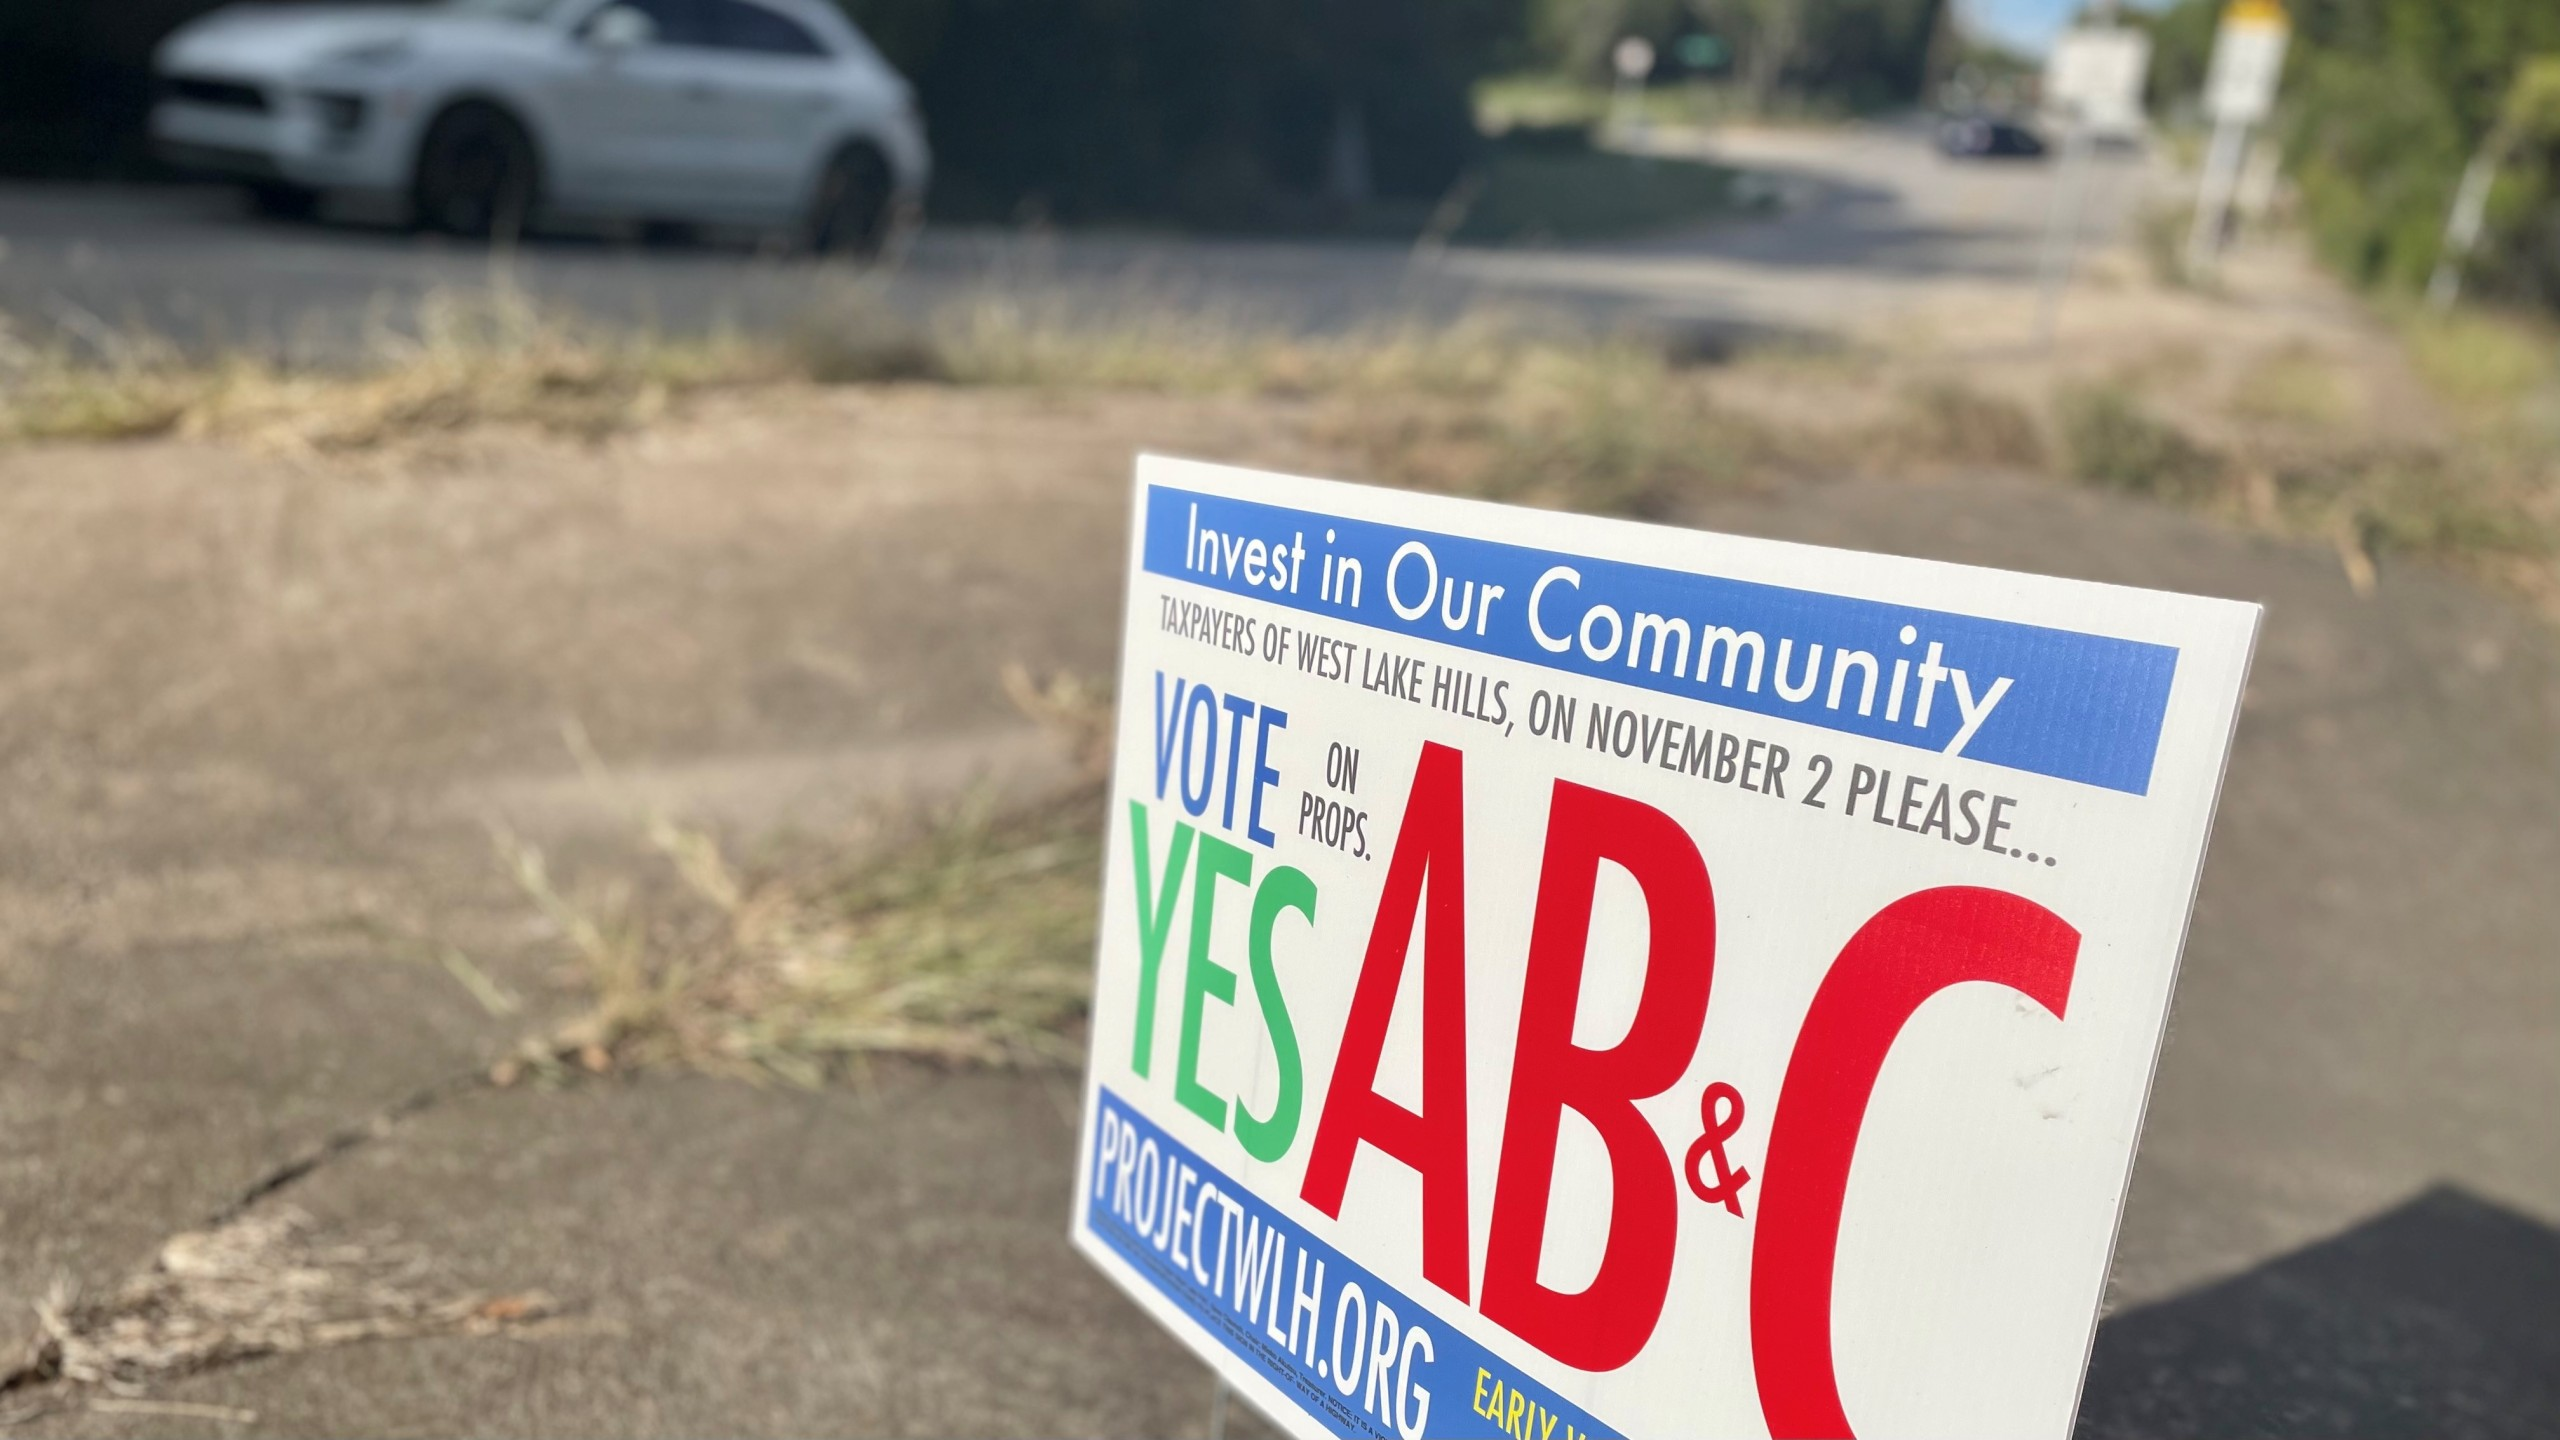 Photo of a sign advocating for the passage of Propositions A, B, and C in West Lake Hills